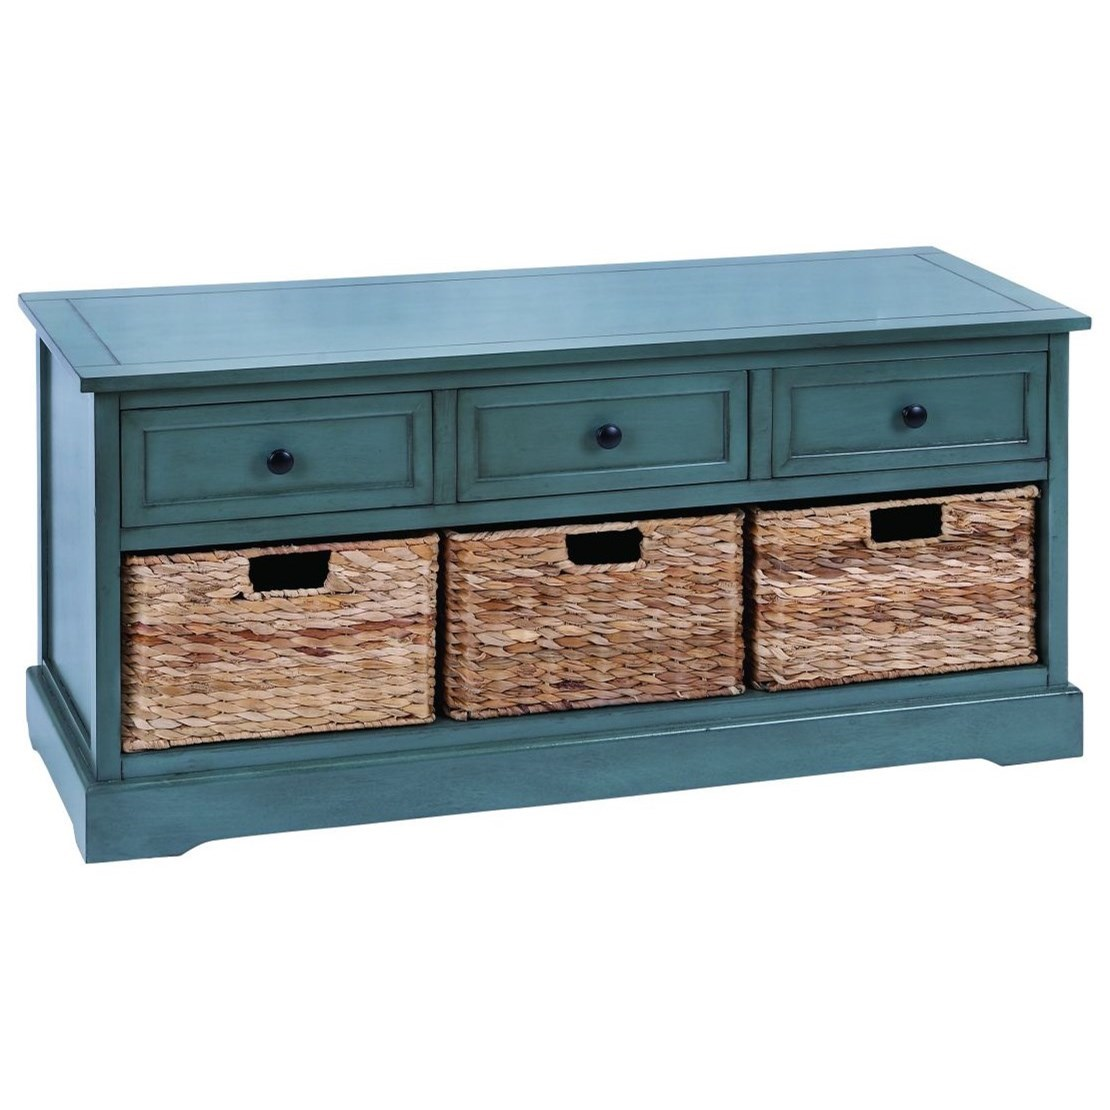 Accent Furniture Wood/Wicker Basket Chest by UMA Enterprises, Inc. at Wilcox Furniture